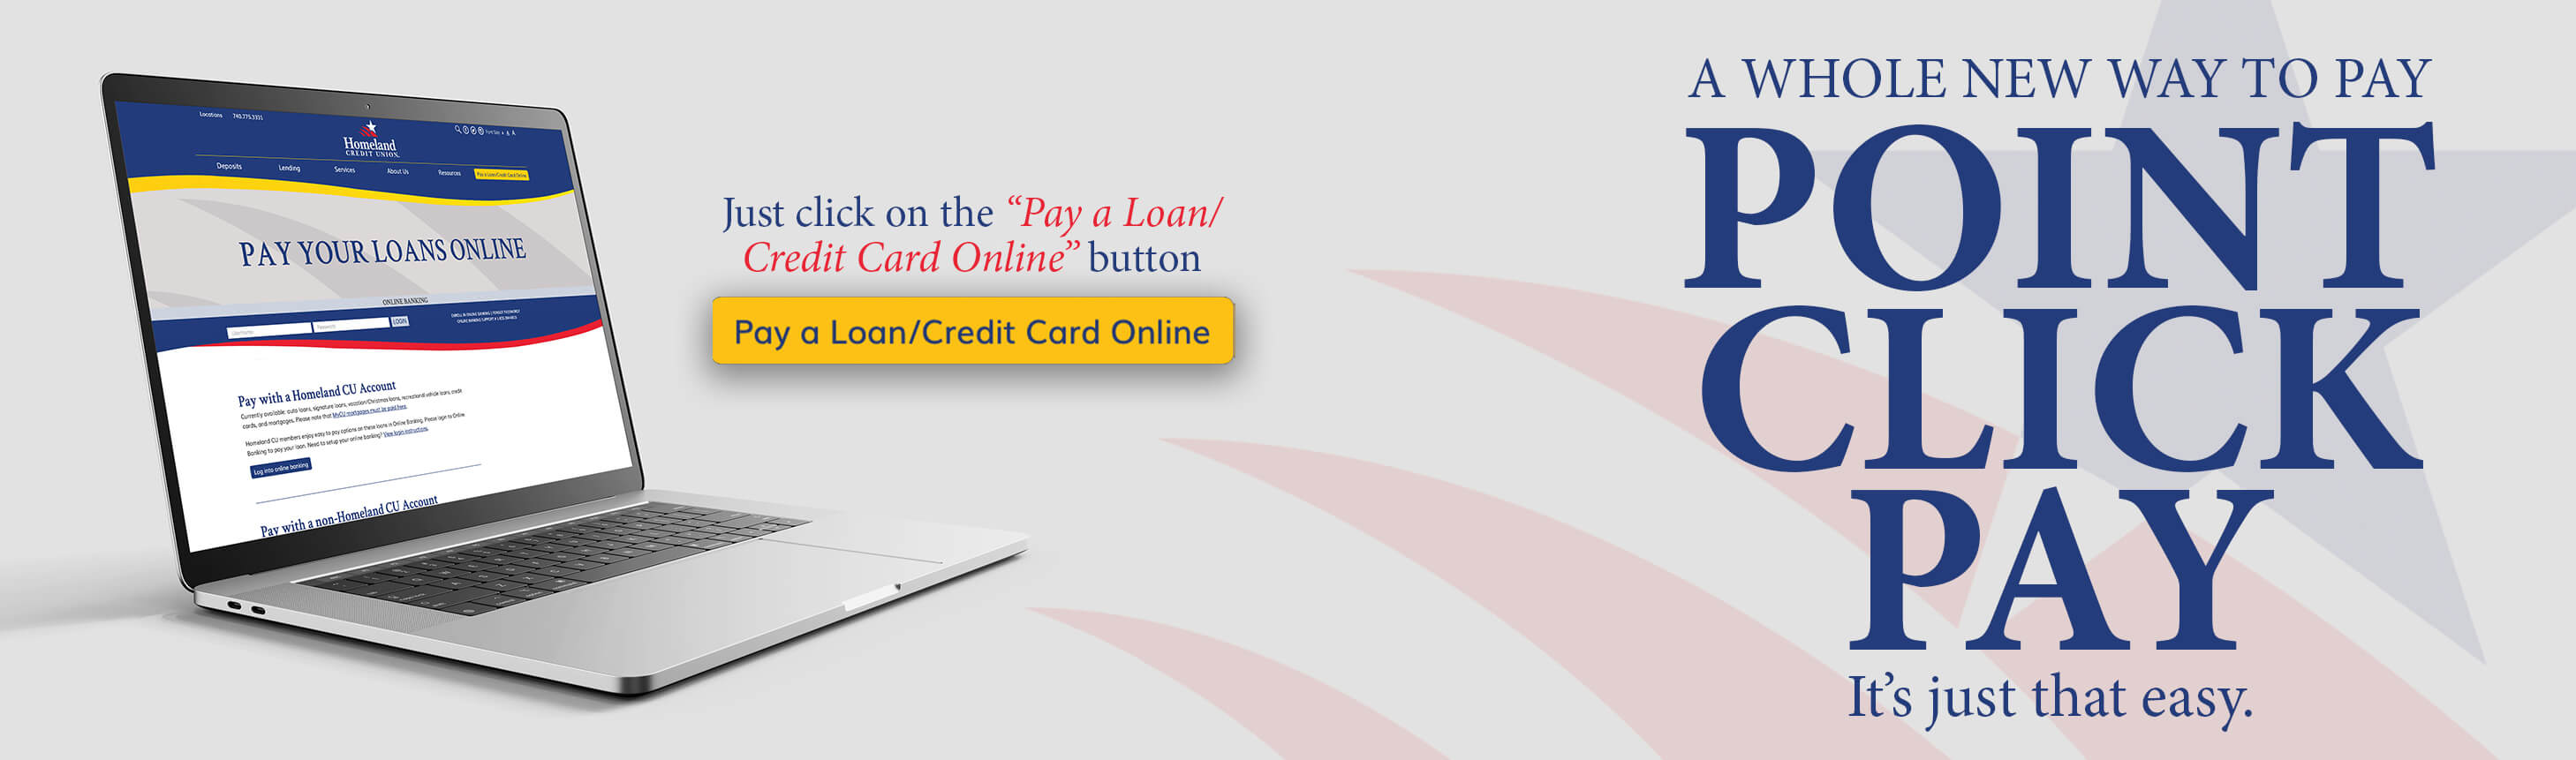 A whole new way to pay!  Point Click Pay. Just click on the